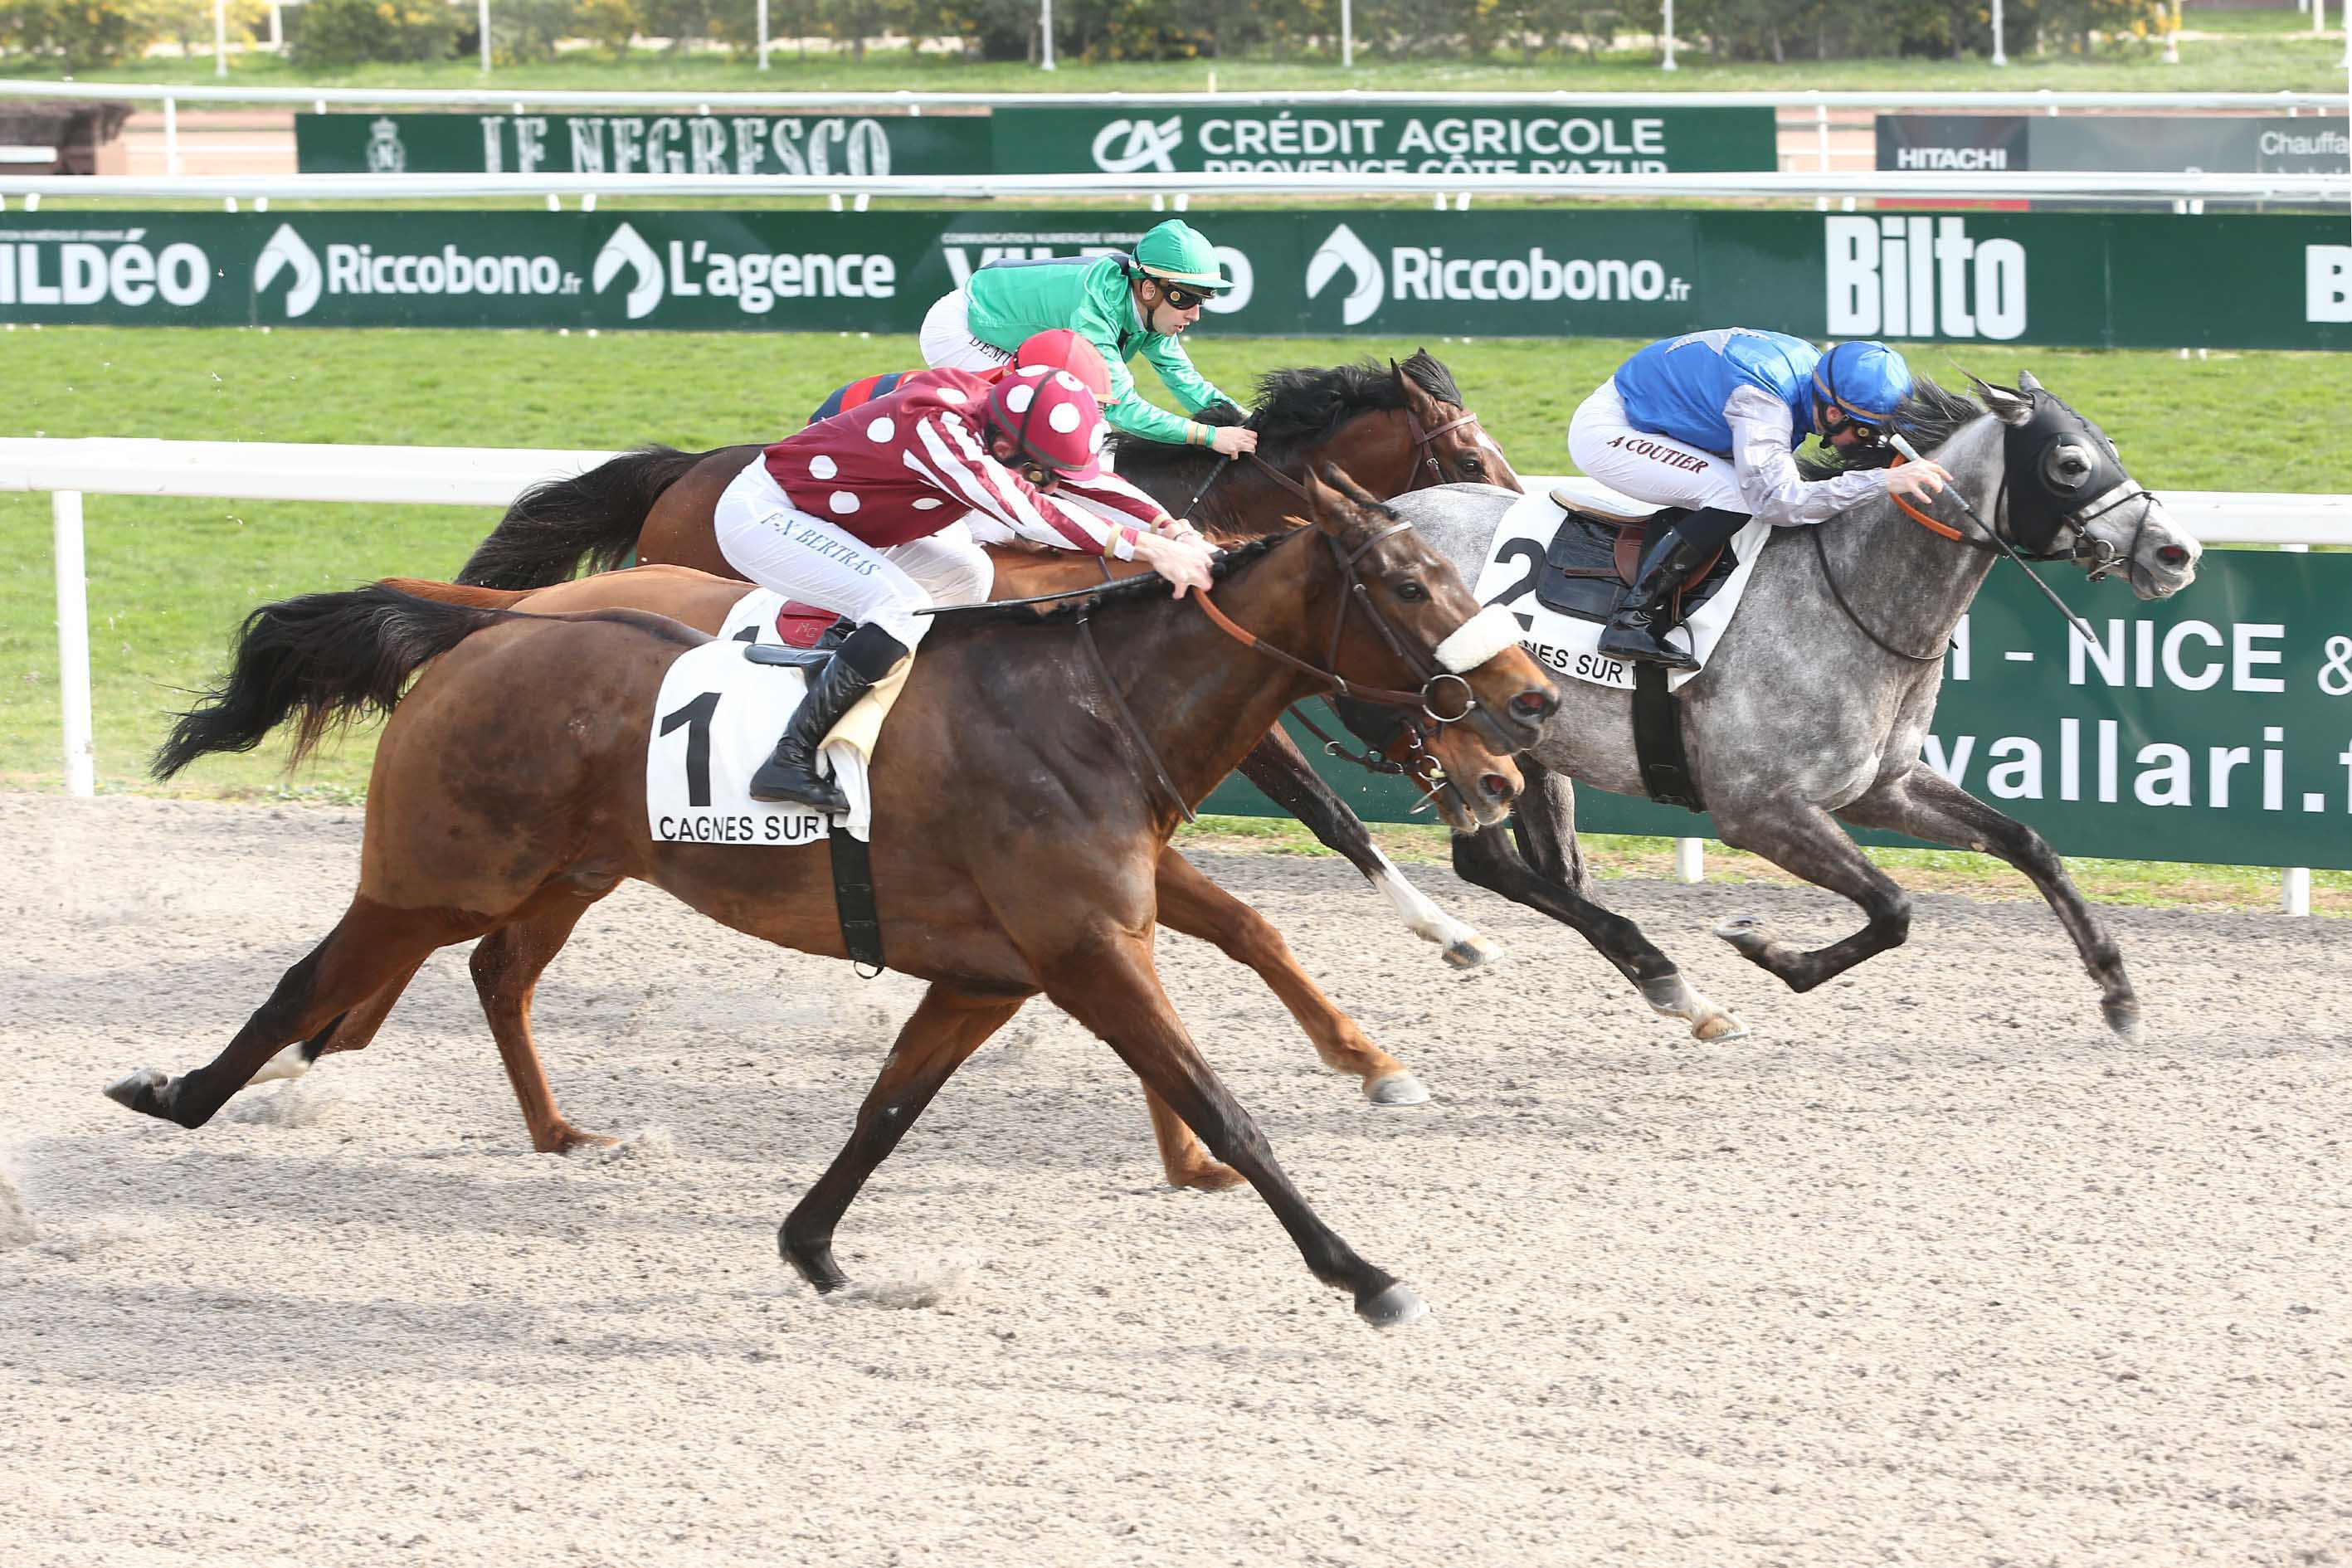 PRIX SKY LAWYER (D) - For Ever fait parler son courage